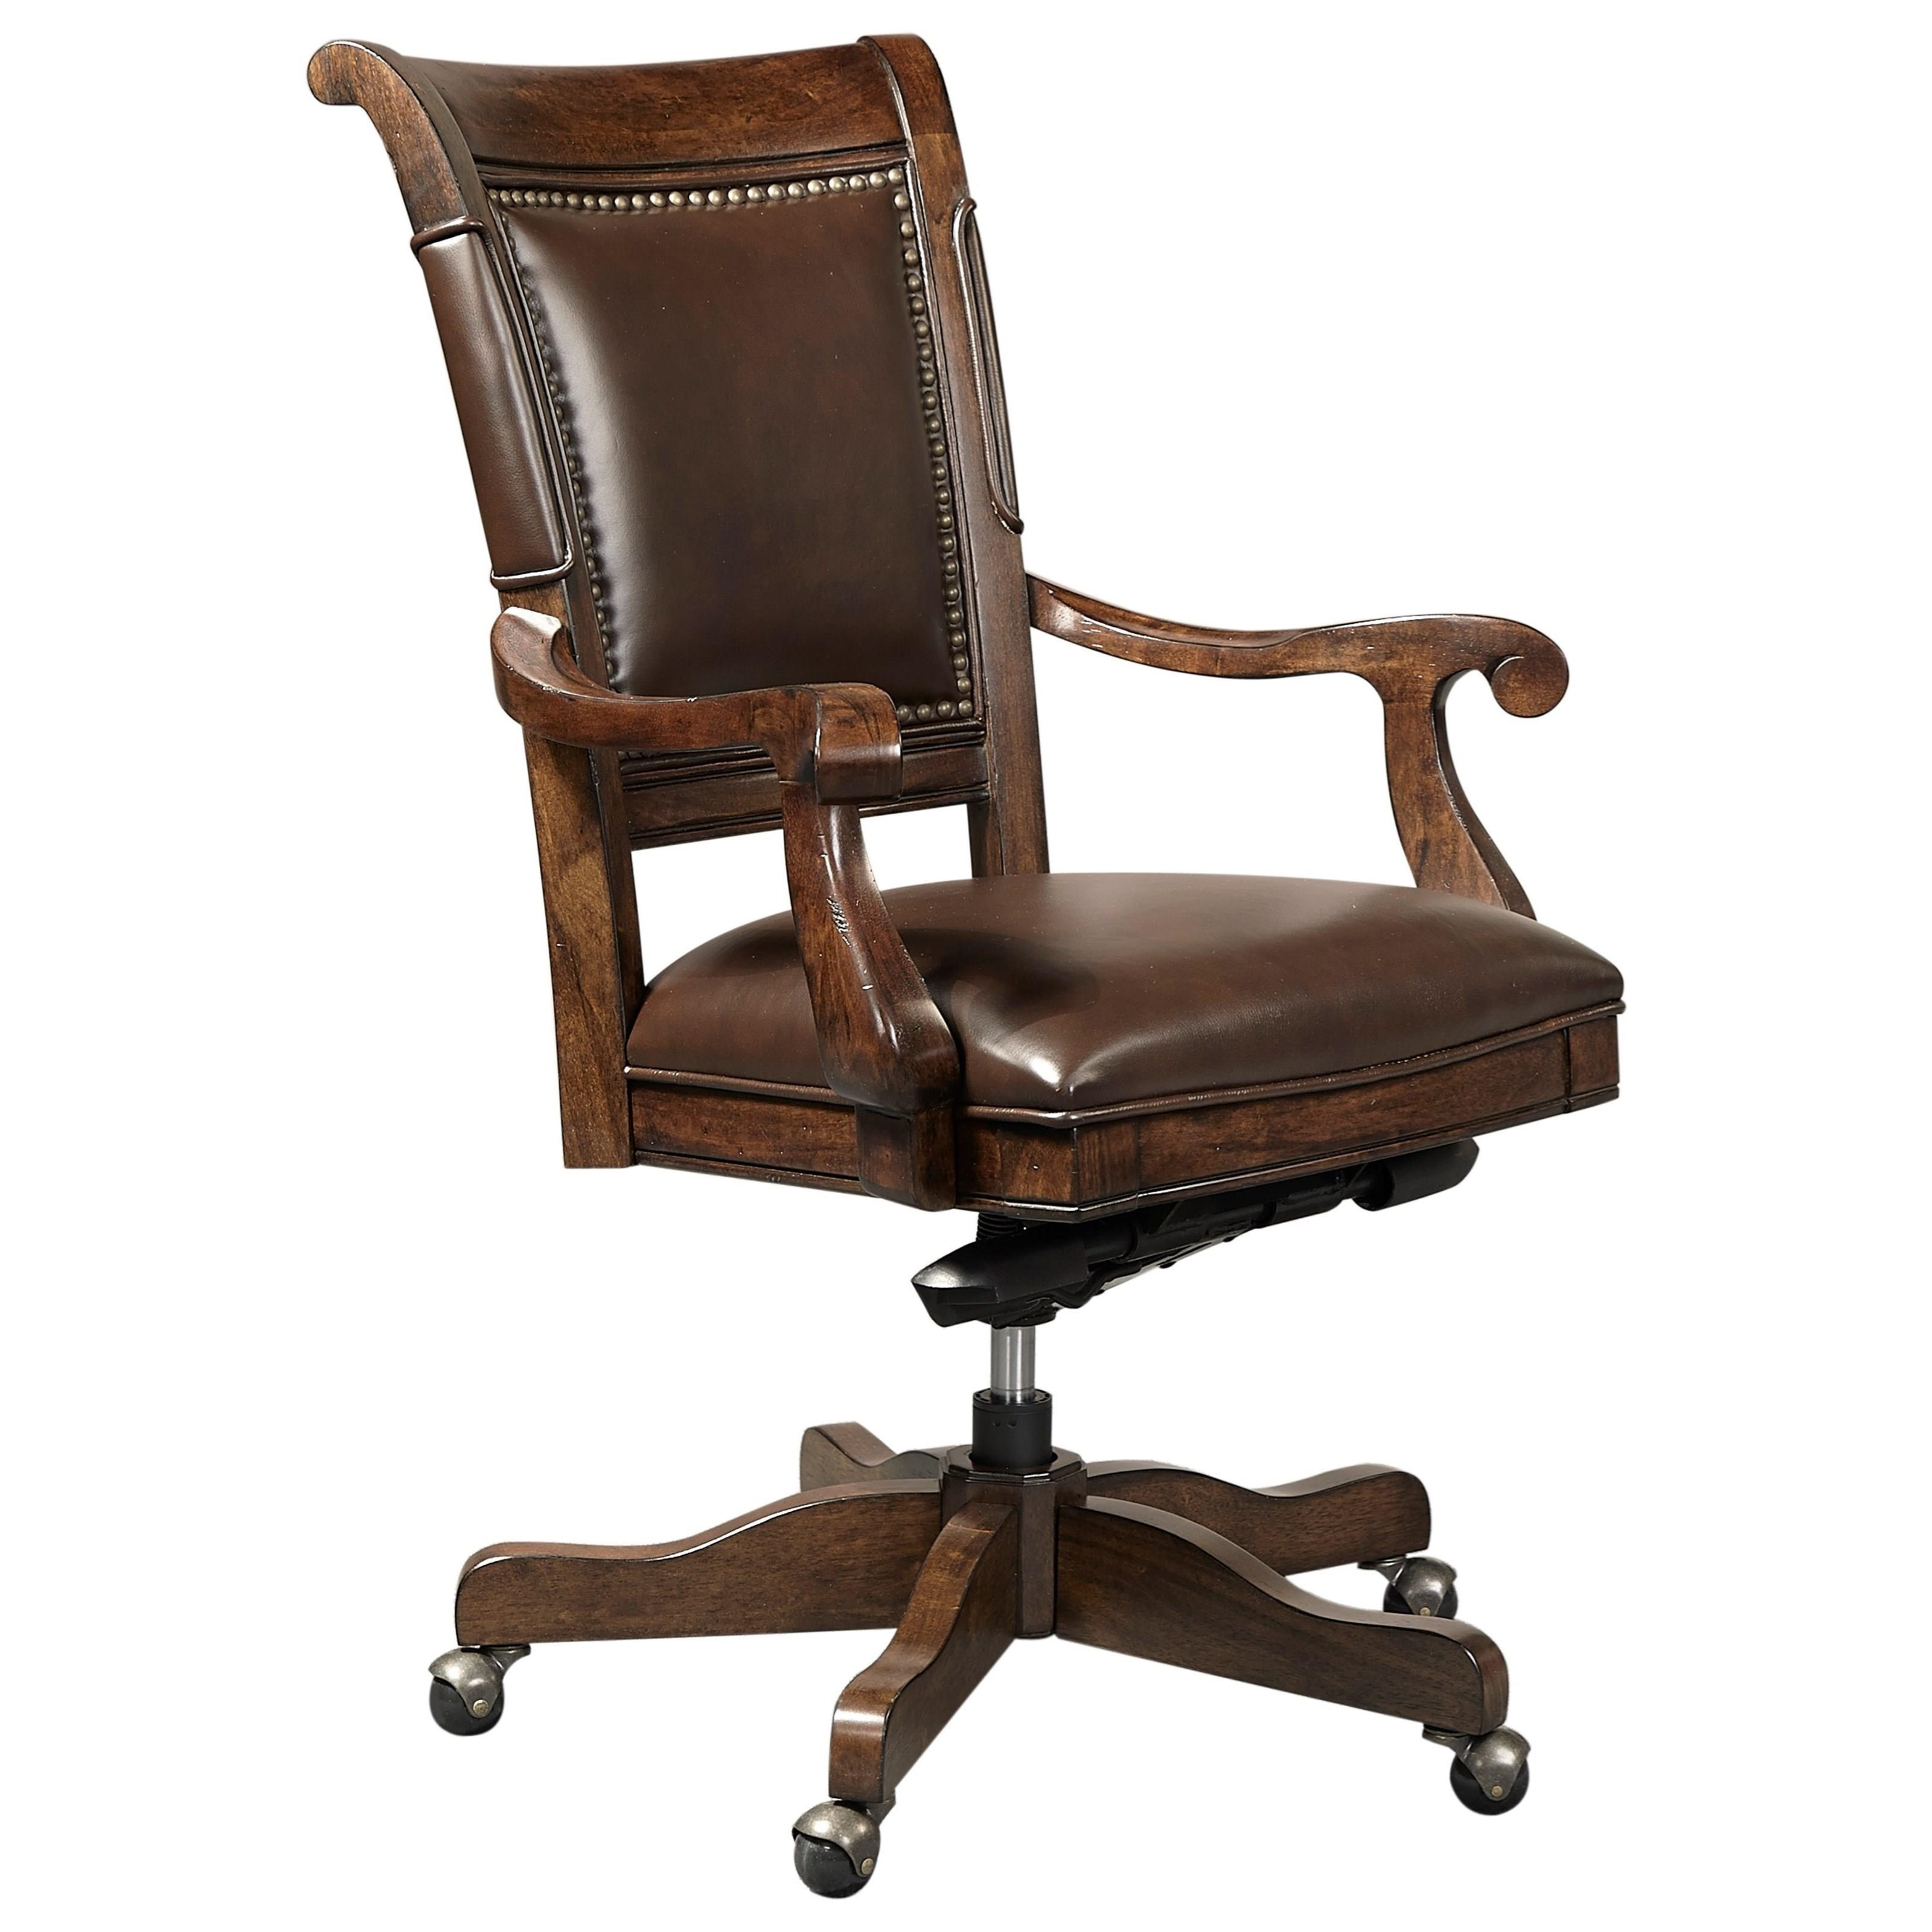 classic office chairs high highland court grand classicoffice chair classic office arm with nailhead trim